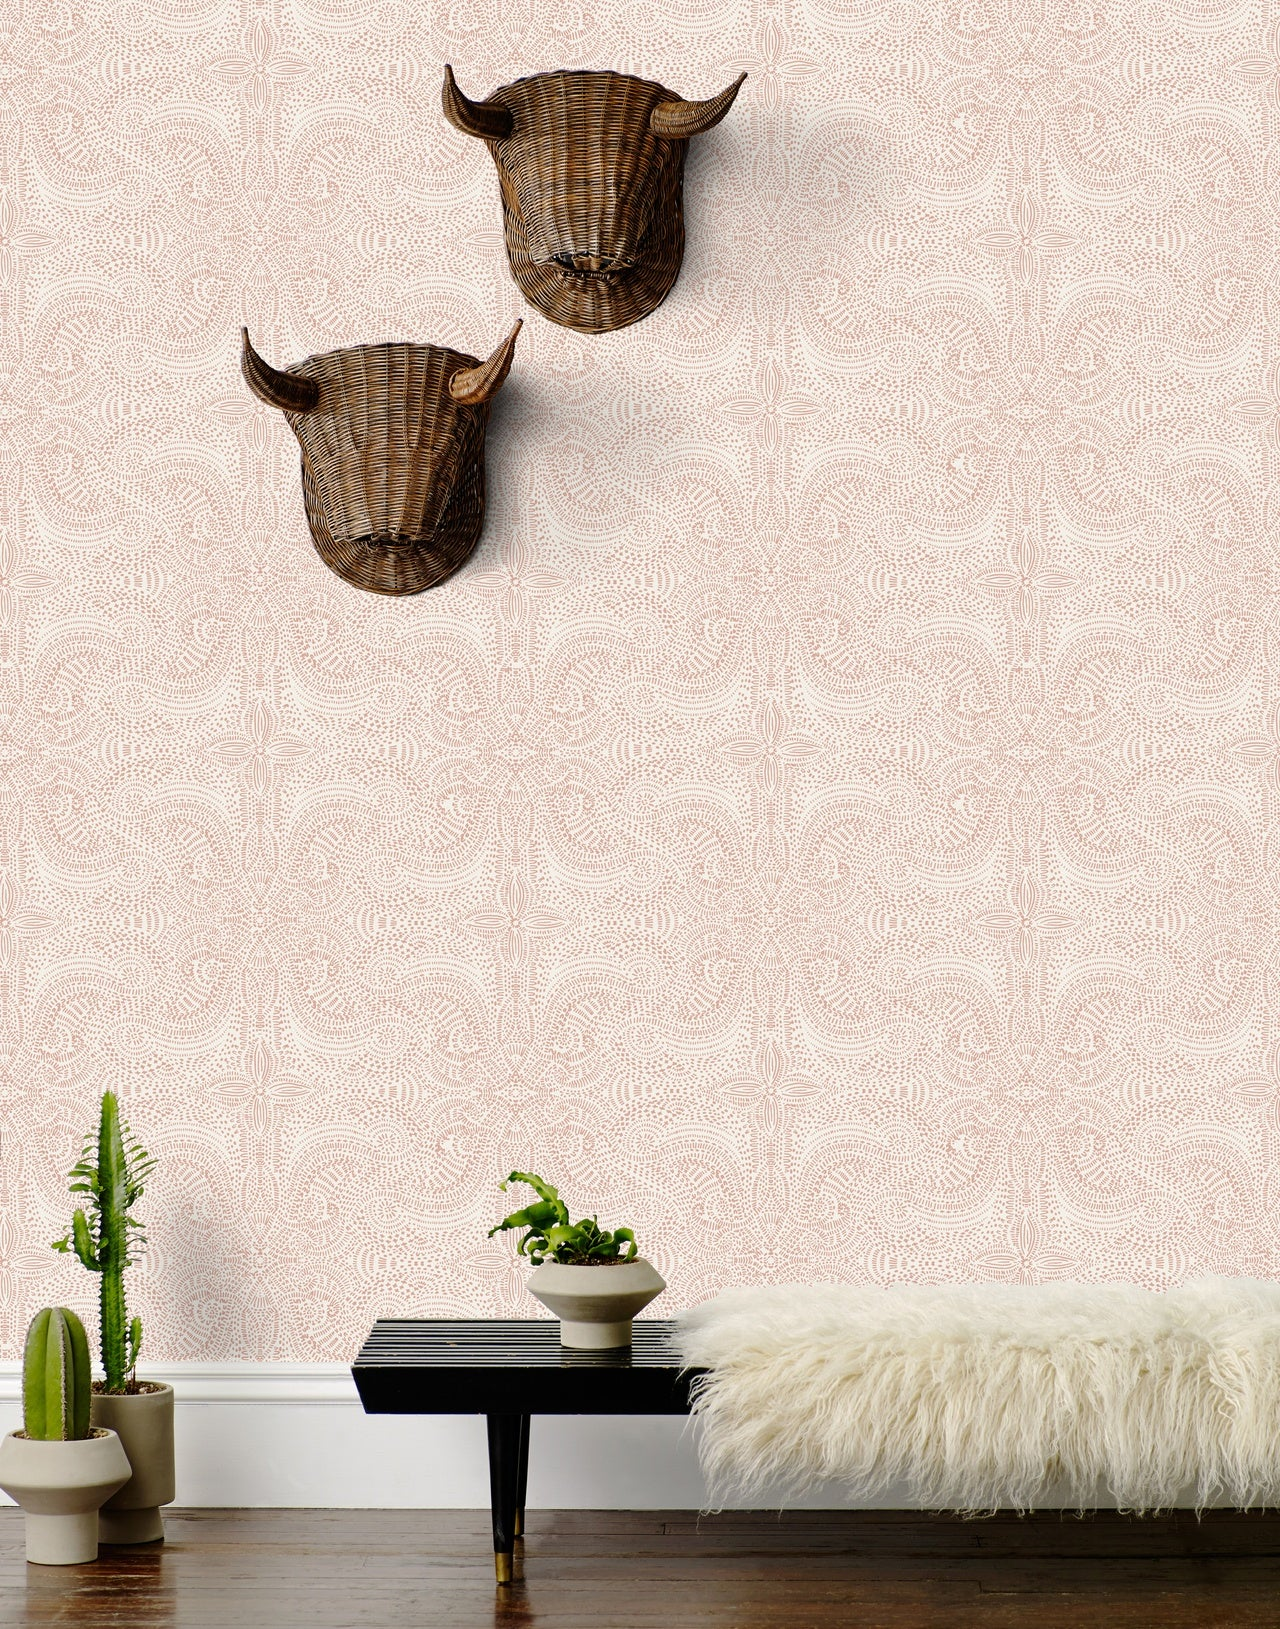 Andanza wallpaper in Blush by Laundry Studio for Hygge & West